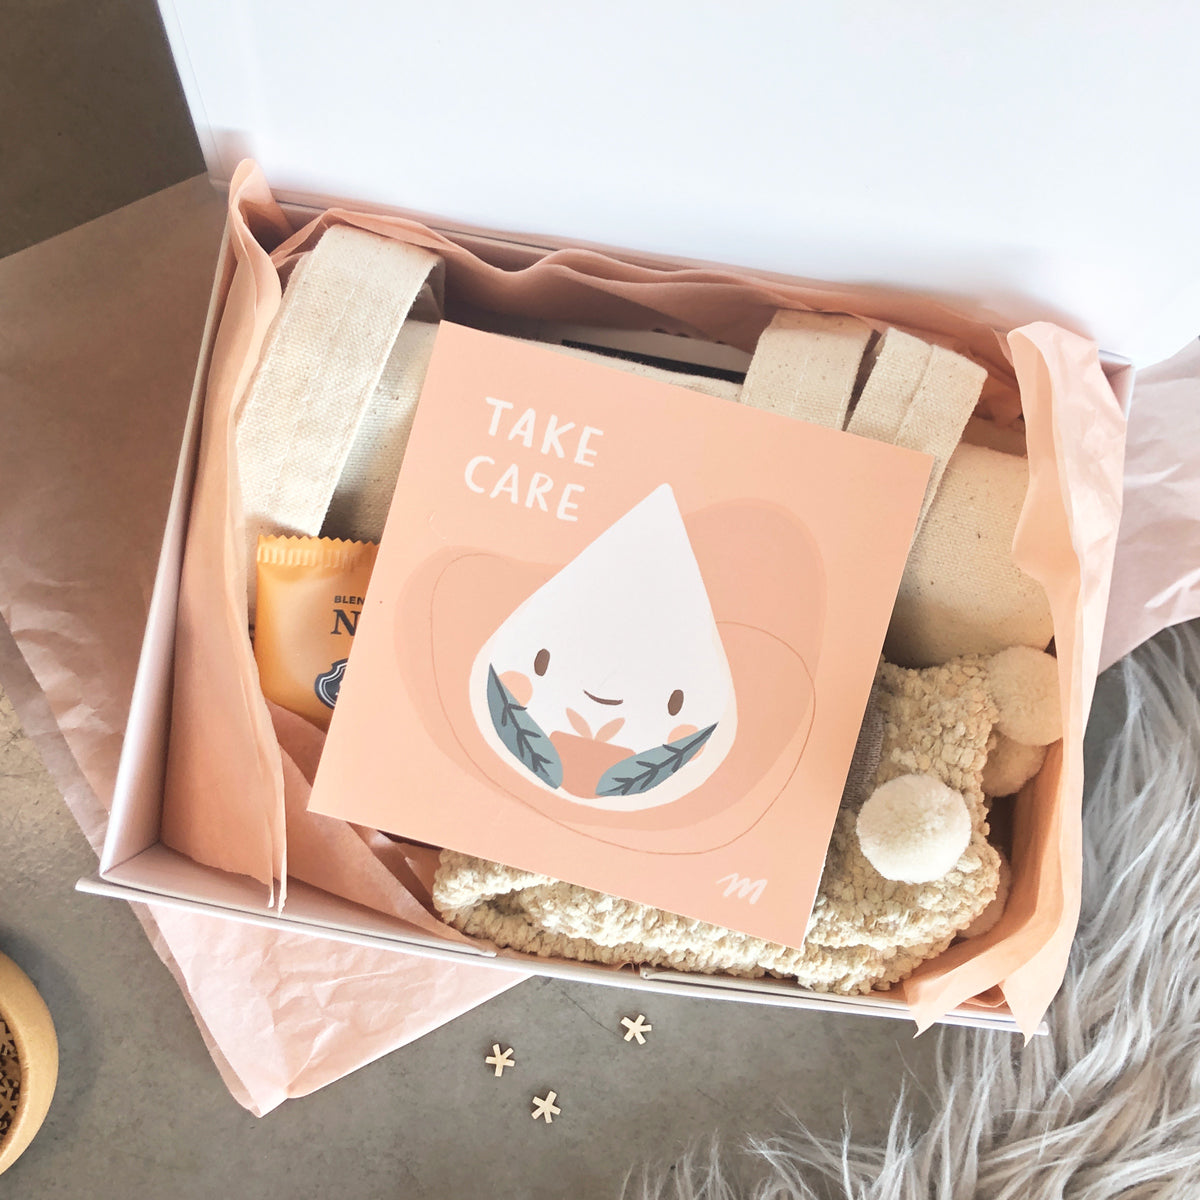 Giftset | Care Package